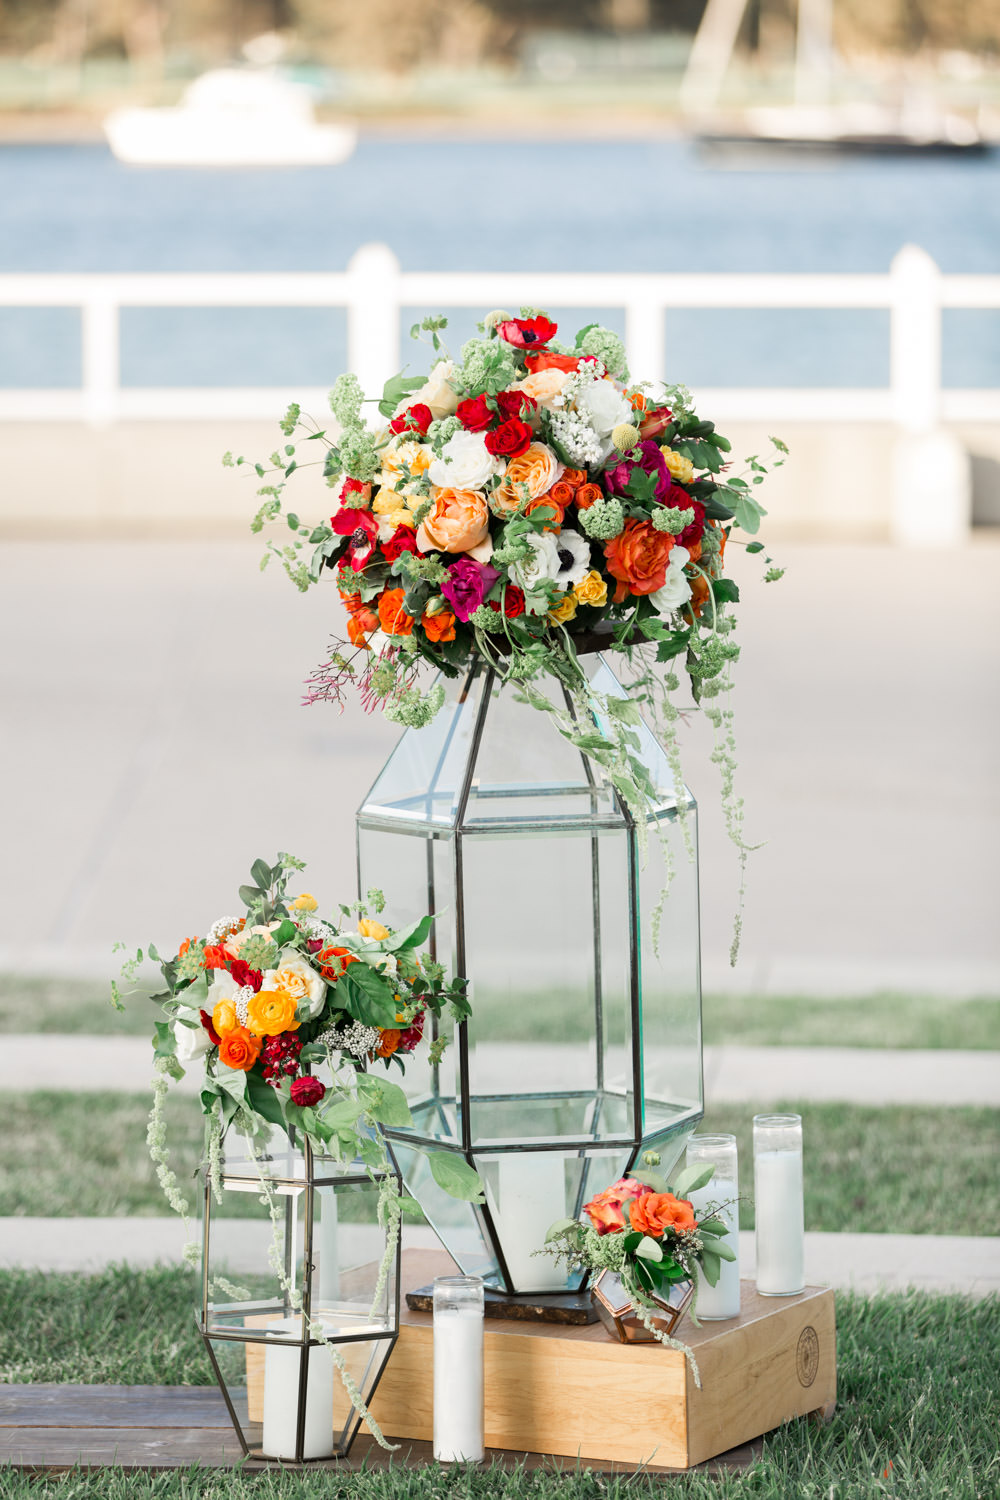 Coronado Community Center Wedding Ceremony, yellow peach red and green floral arrangements, Cavin Elizabeth Photography